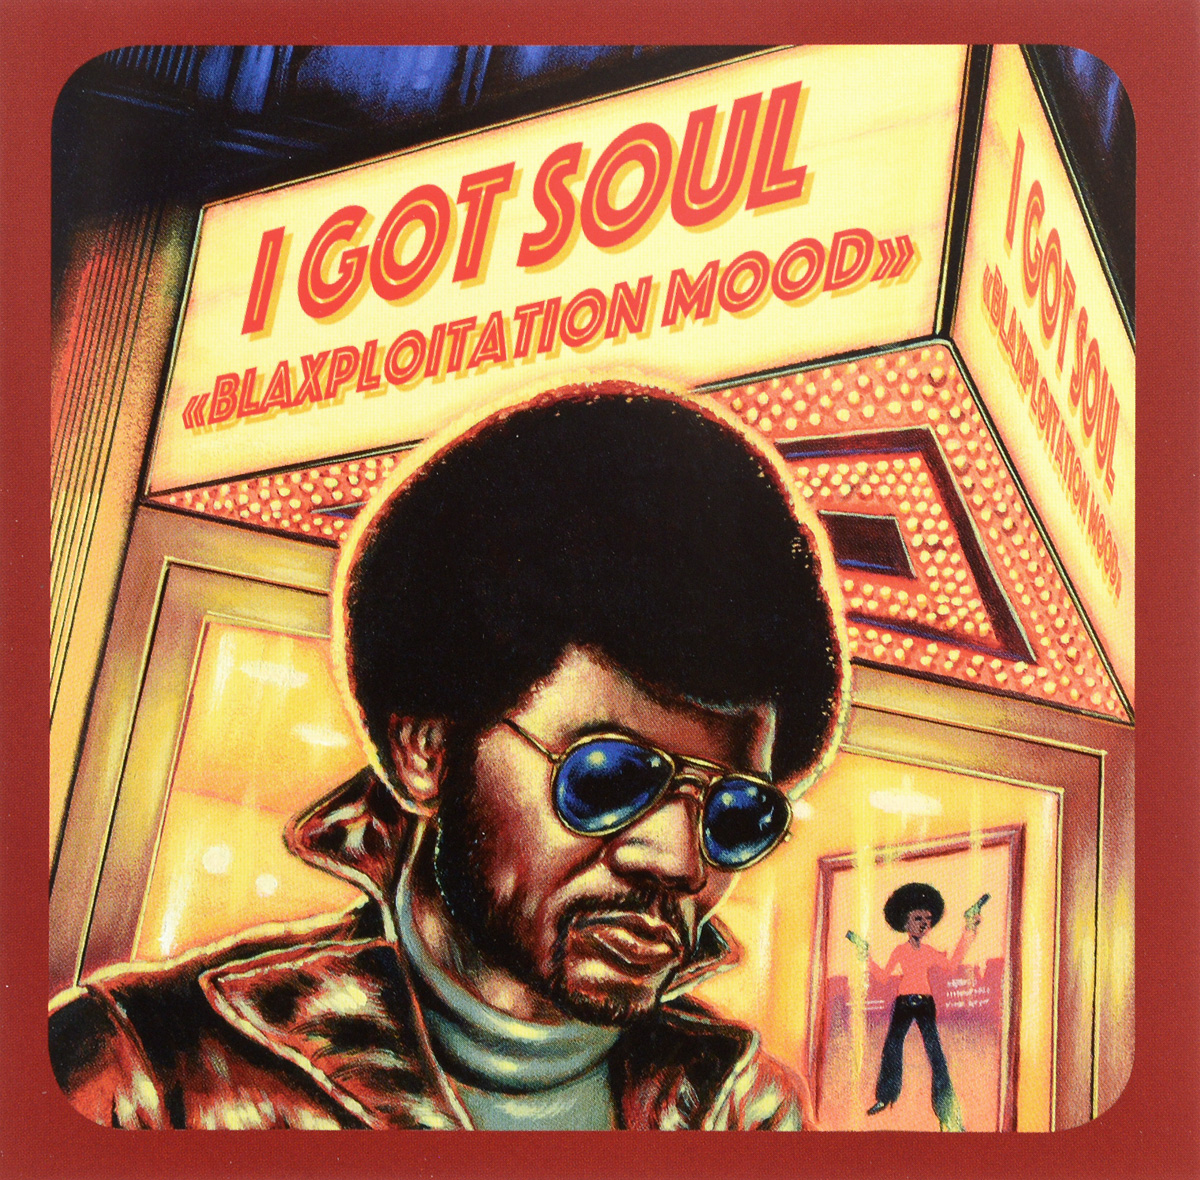 Undisputed Truth I Got Soul. Blaxploitation Mood soul i d